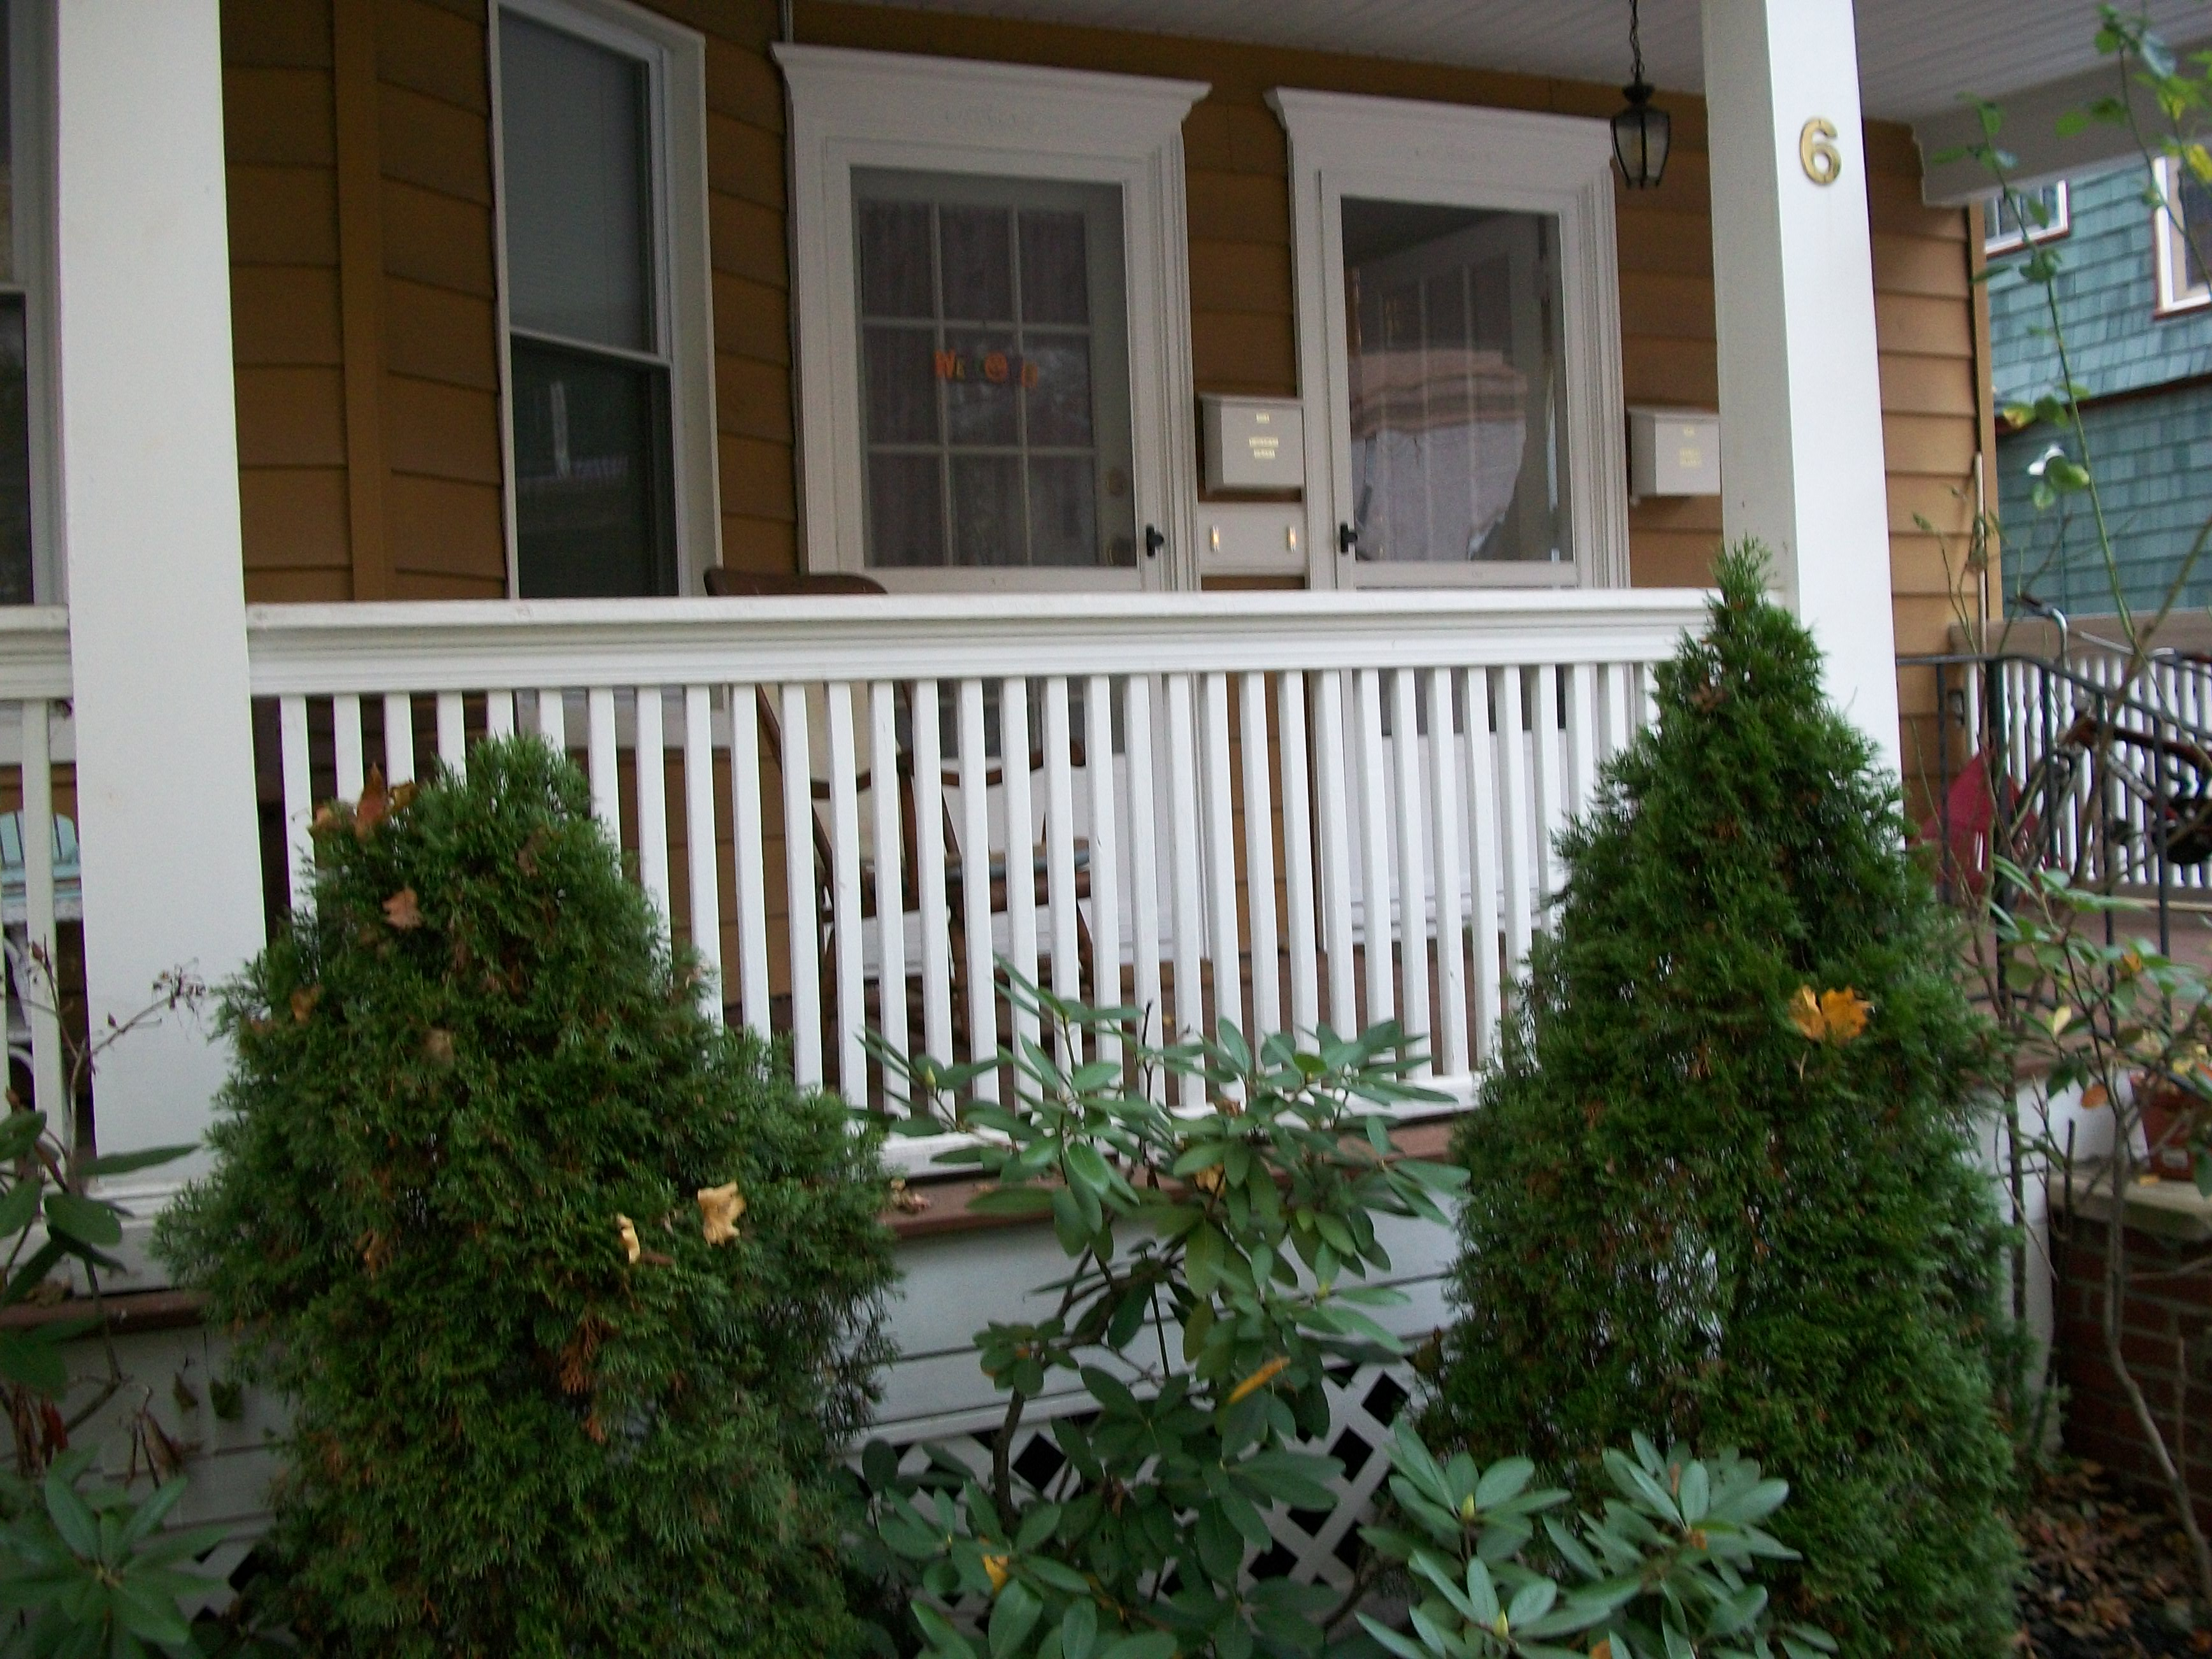 Piquant Railings Board Substructure Mings Railings Board Substructure Mings Front Porch Railing Cost Front Porch Railing Contractors houzz-03 Front Porch Railing